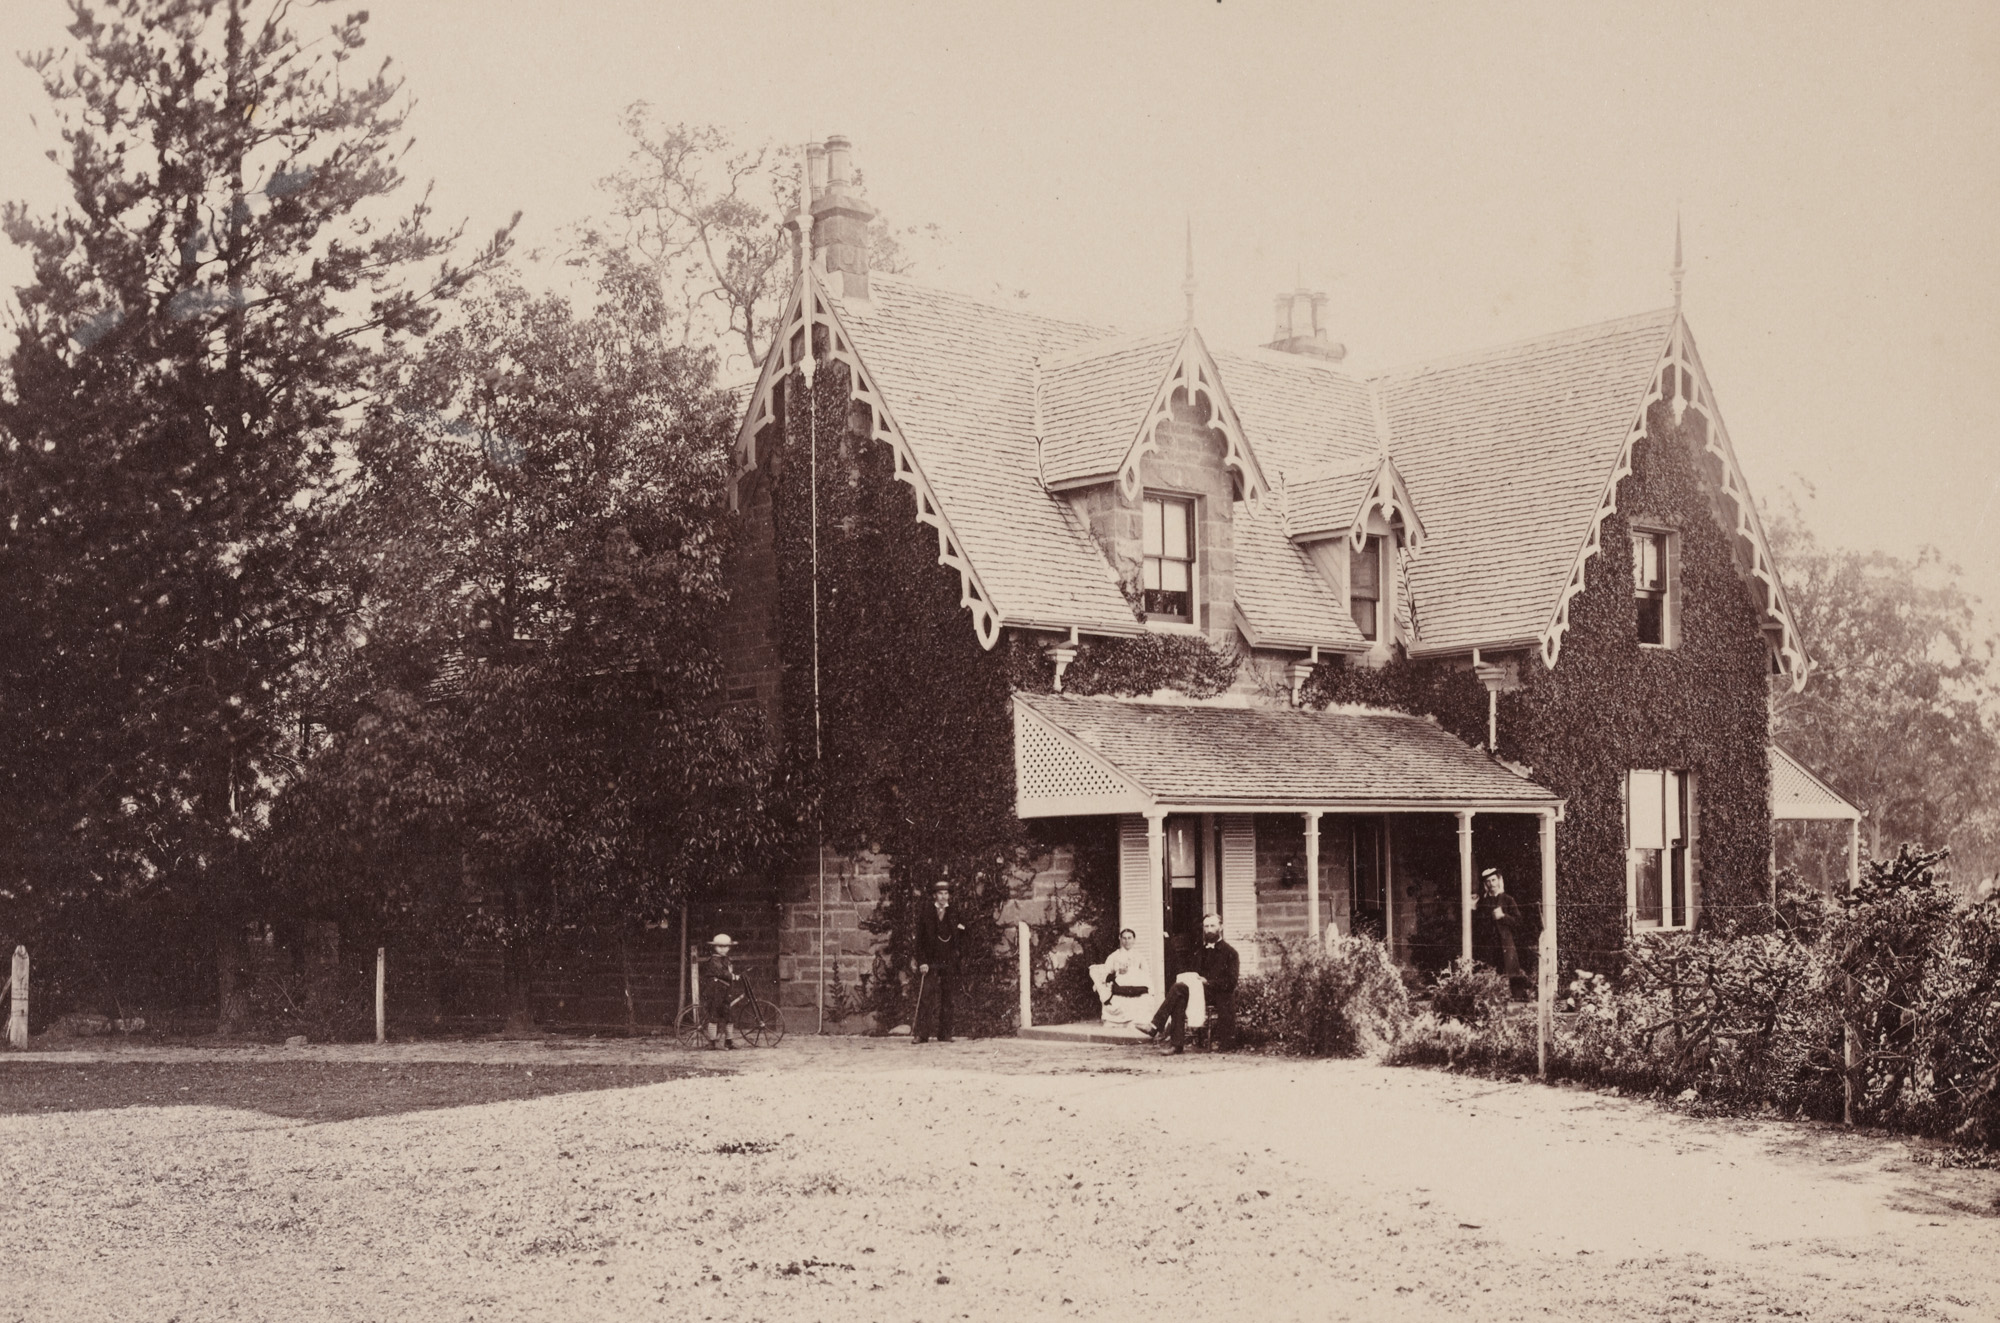 Reverend Arthur Wellesley Pain and members of his family at the Parsonage, Cobbity, c1877 / photographer unknown